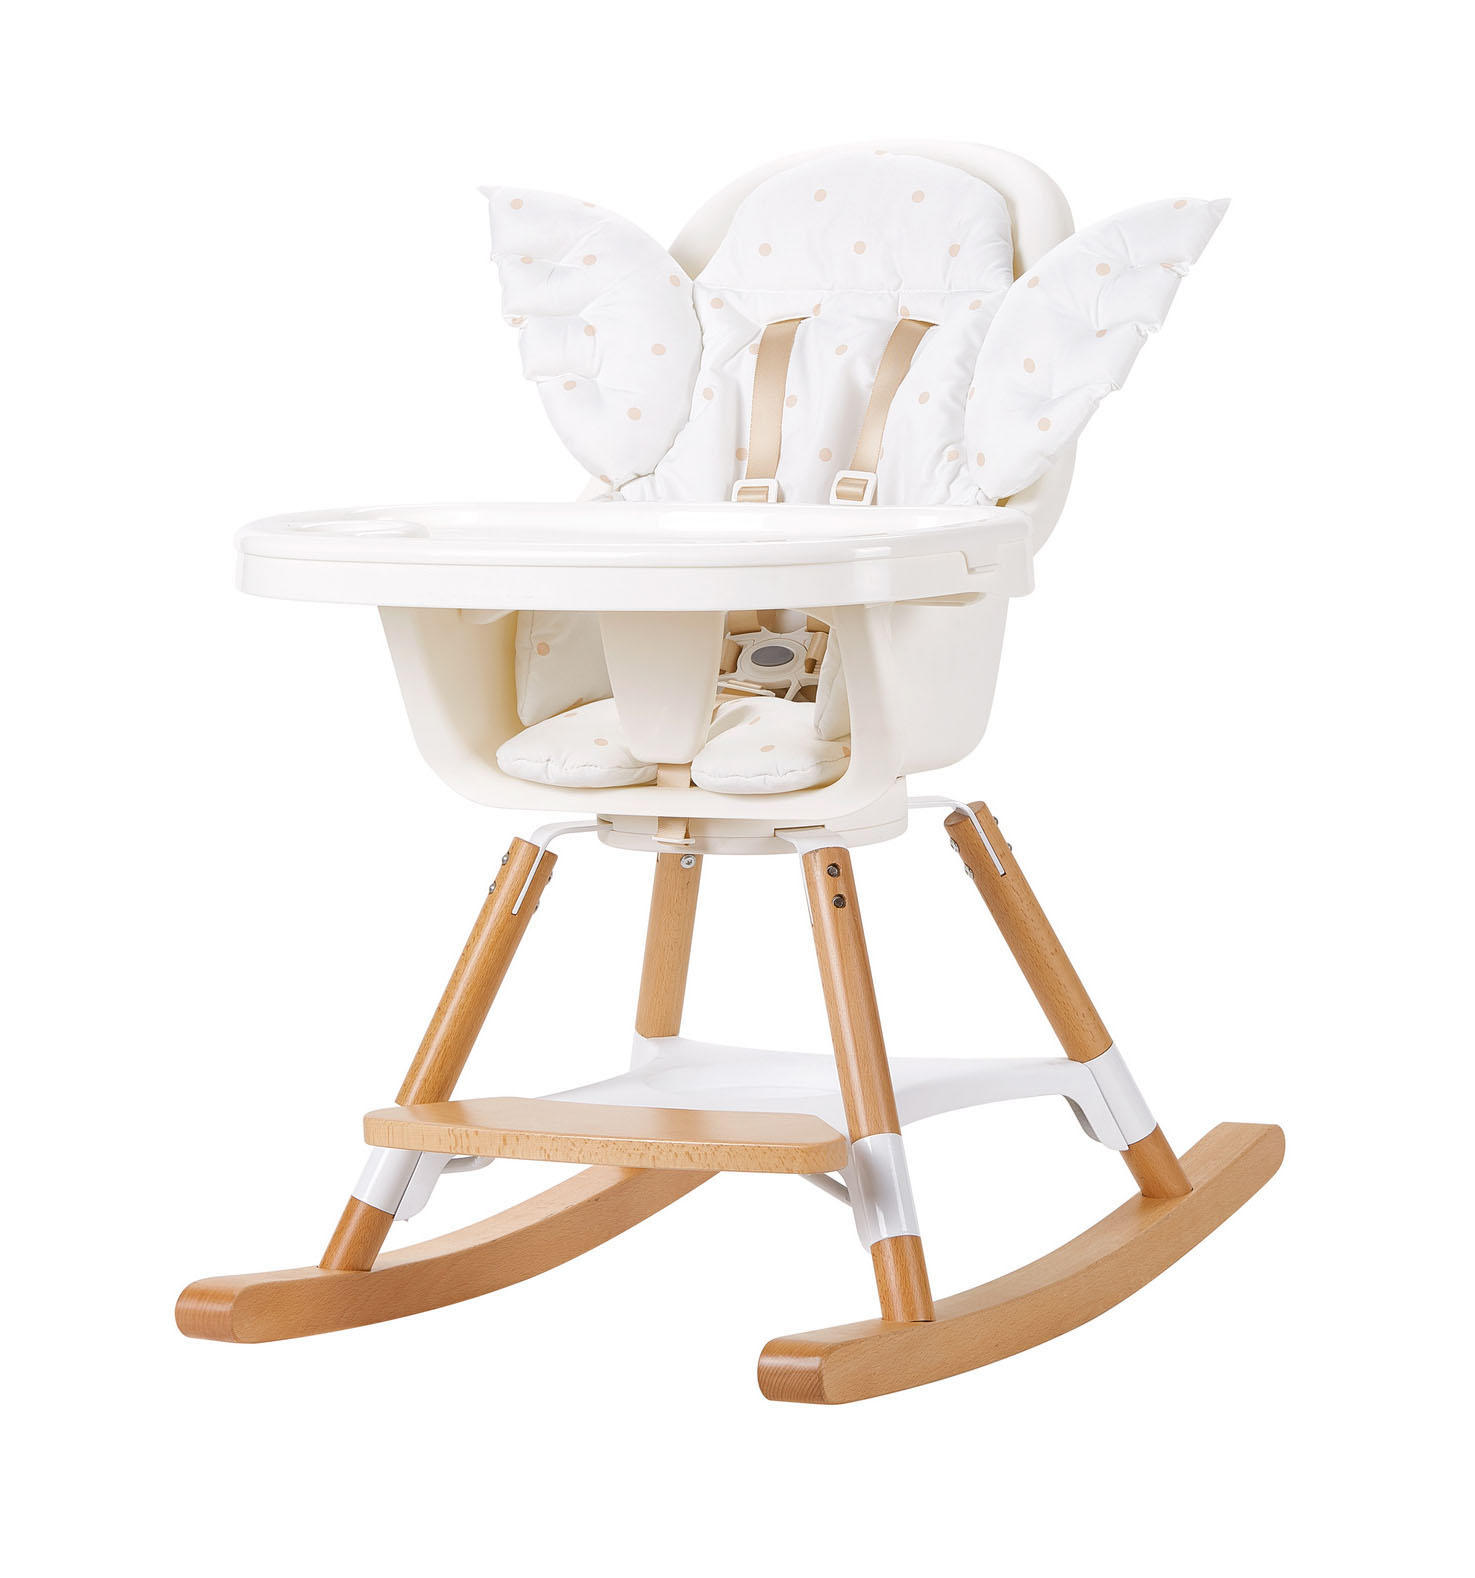 Latest chair top high chair infant manufacturers for feeding-3